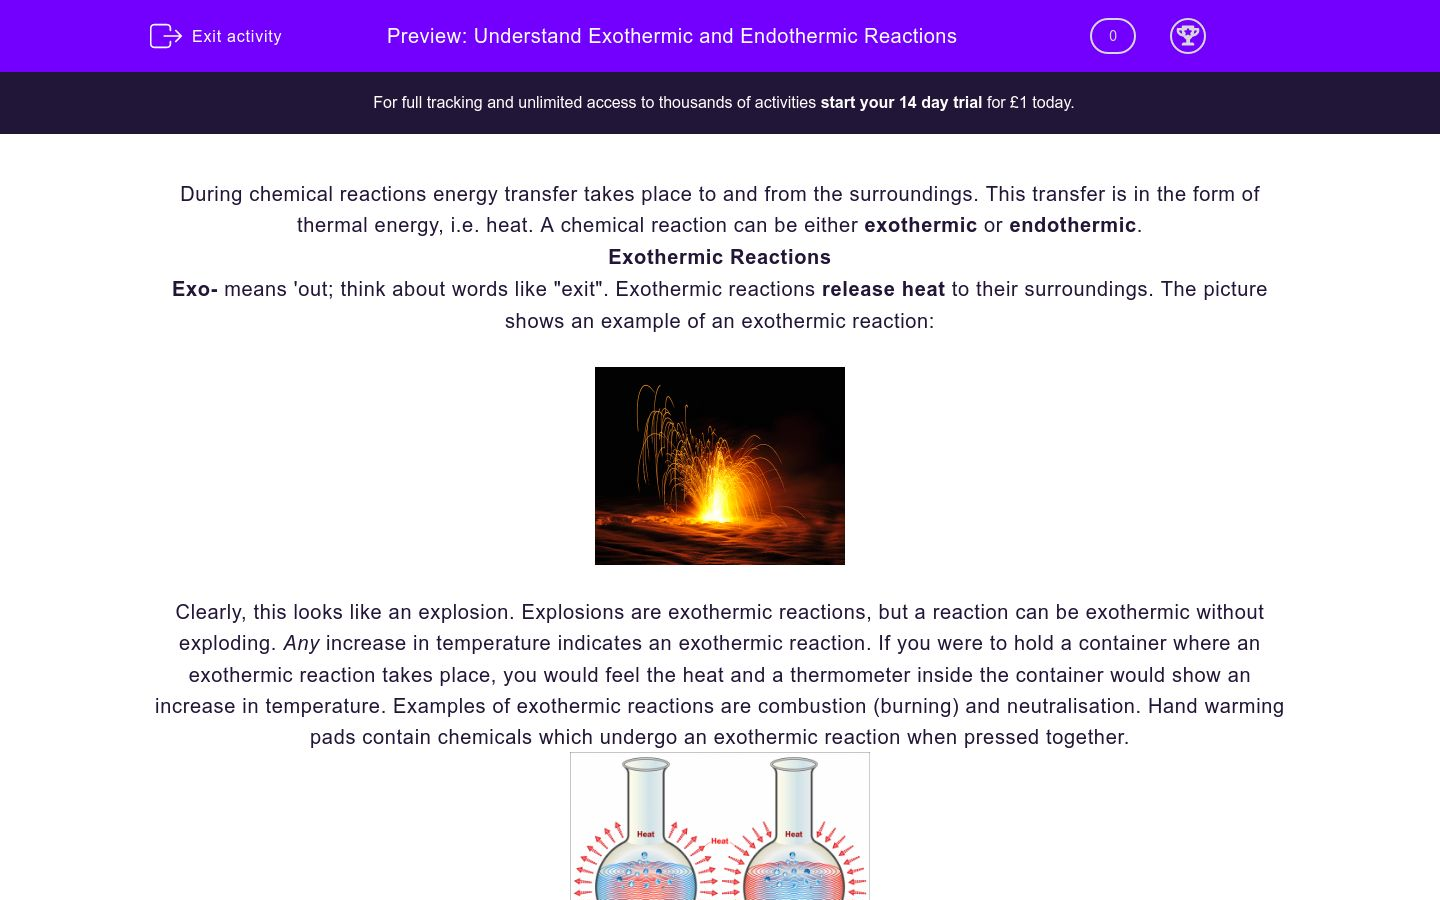 'Understand Exothermic and Endothermic Reactions' worksheet